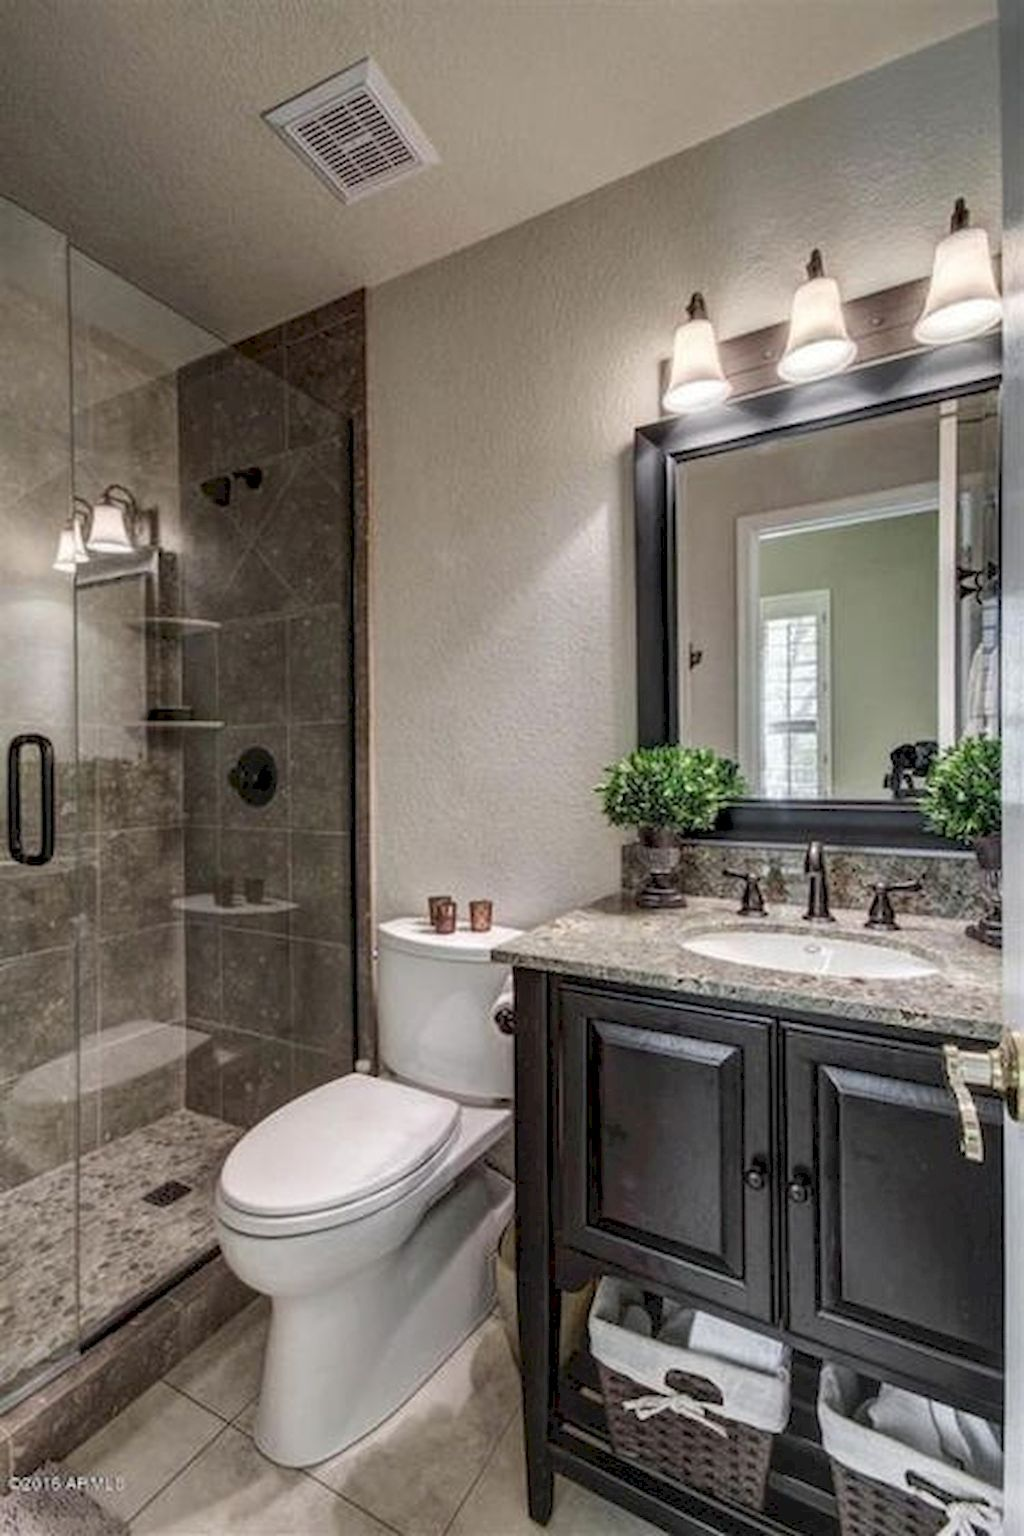 111 Awesome Small Bathroom Remodel Ideas On A Budget 5